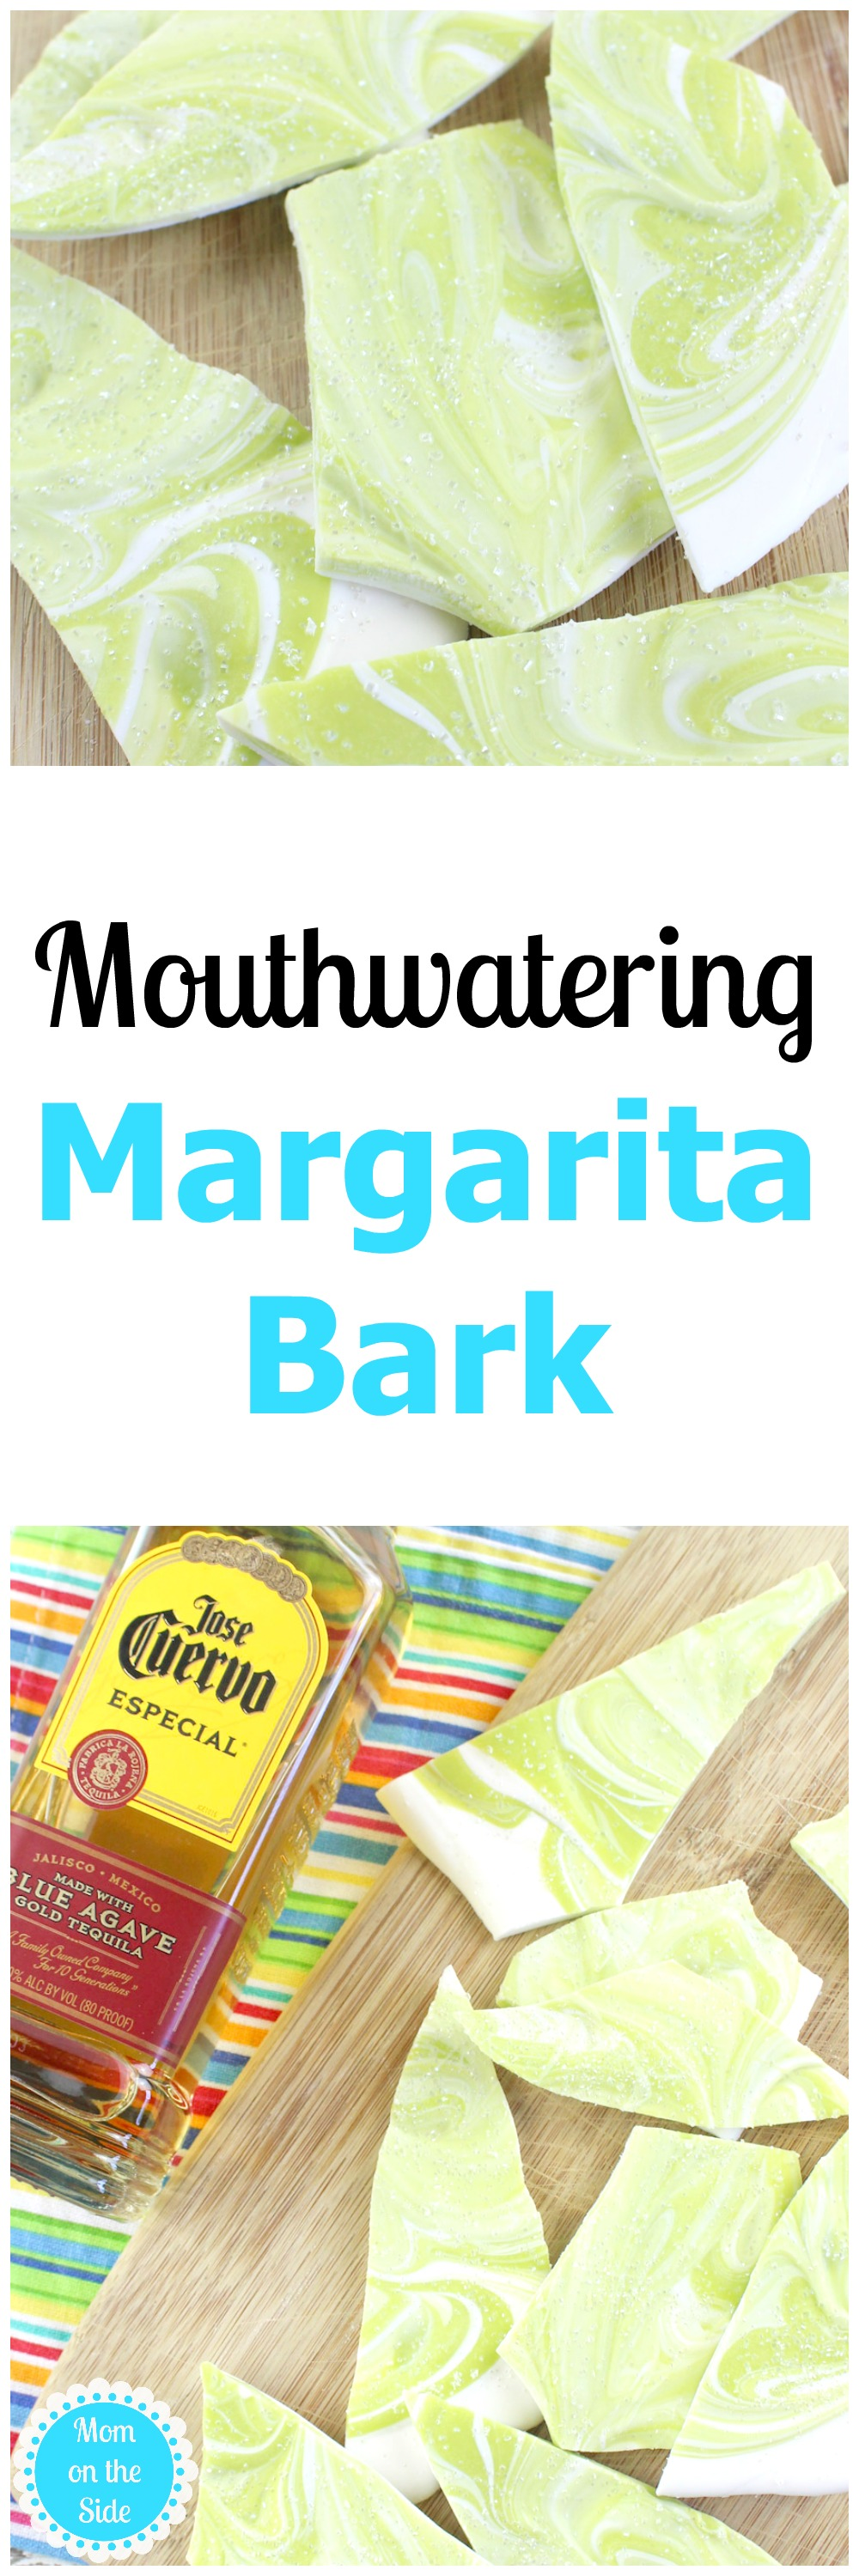 How to Make Margarita Bark